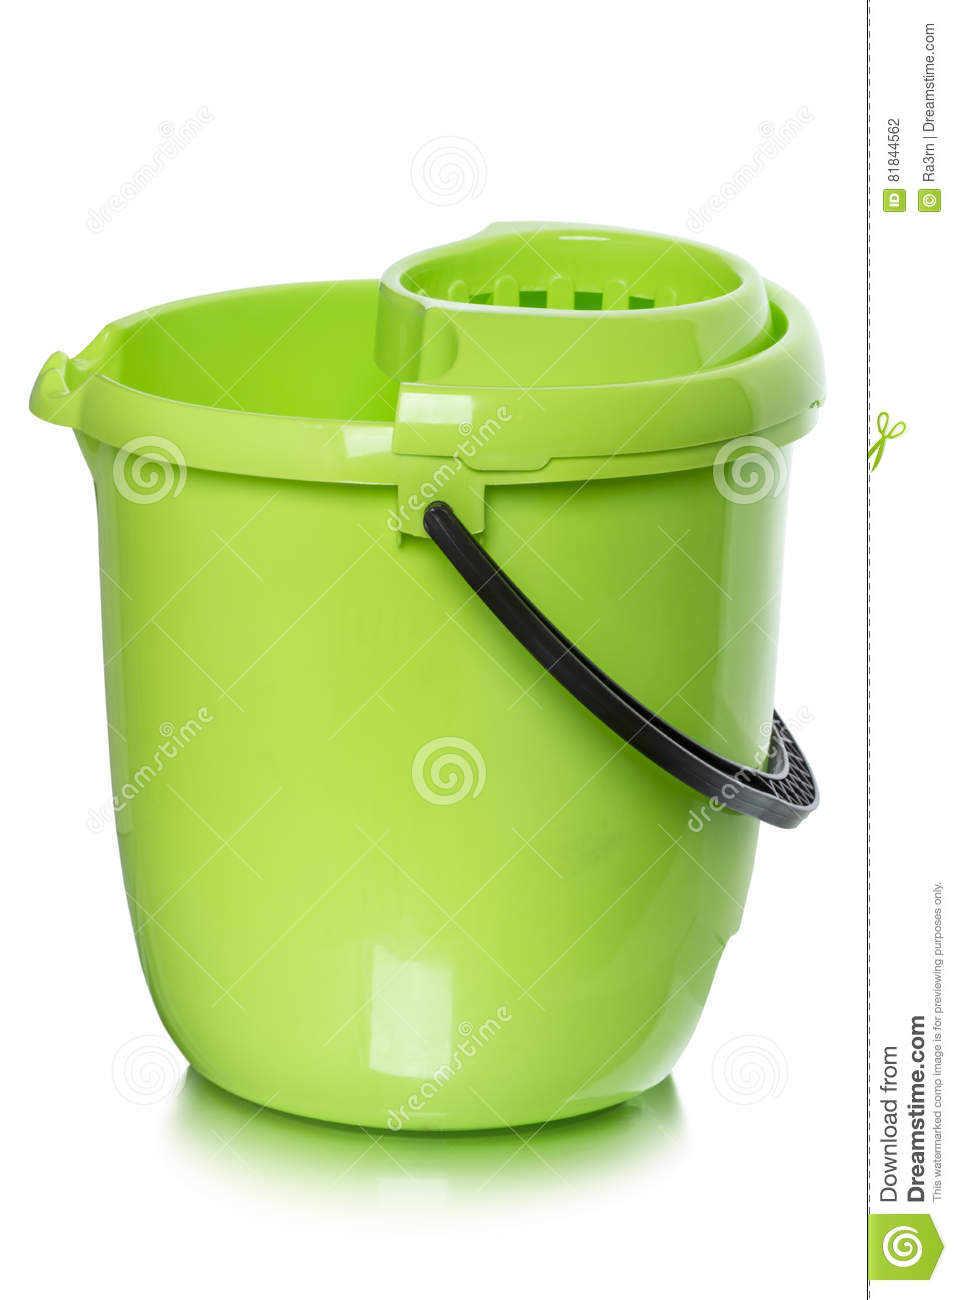 8450eb7de72552 Bucket for wet cleaning stock photo. Image of green, clean - 81844562